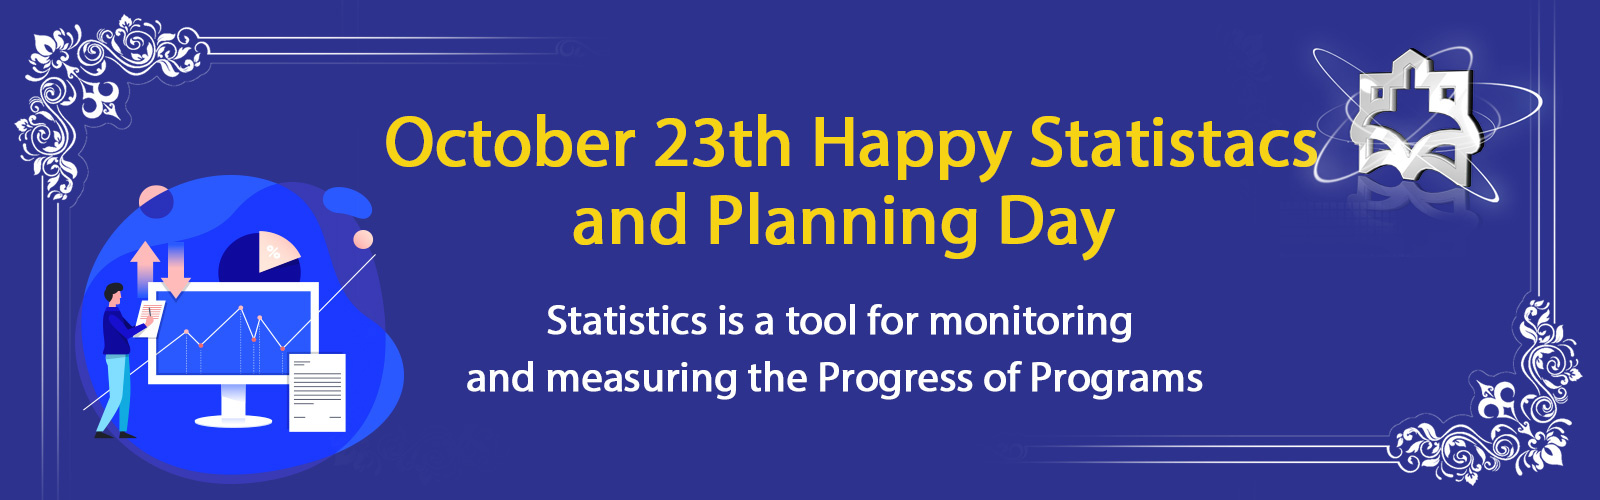 Happy Statistics and Planning Day